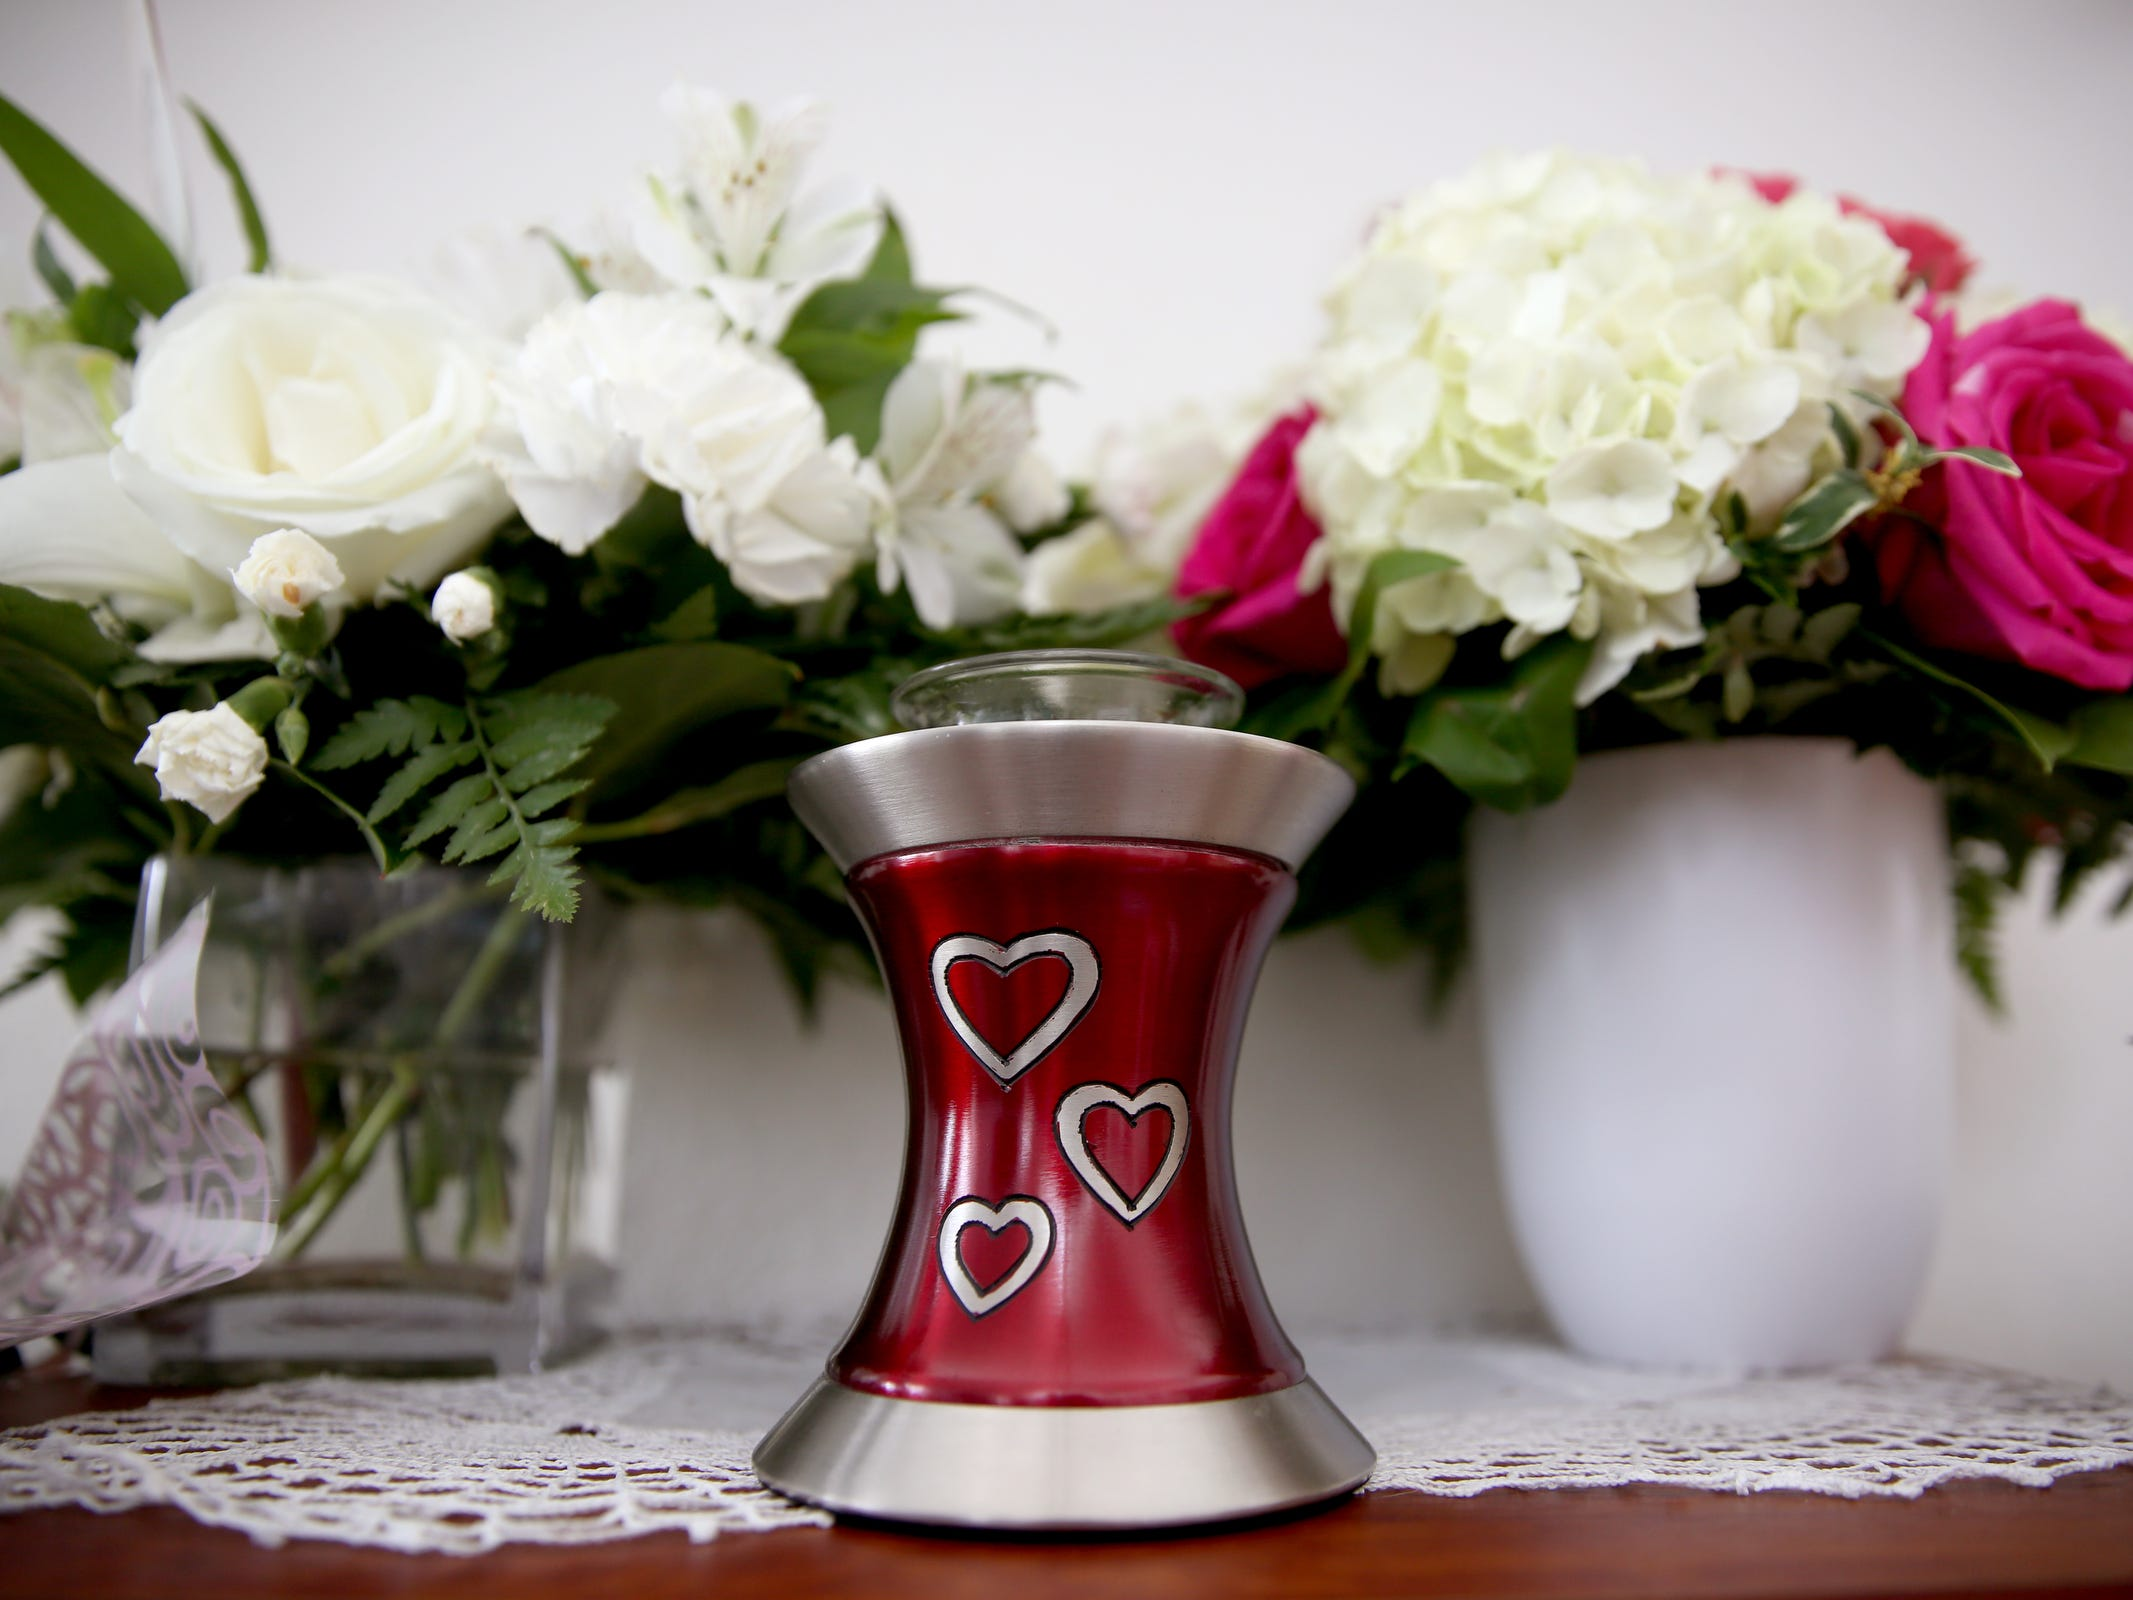 The urn for 7-week-old Evianna Quintero-McCall sits at her parents' home in West Salem on March 22, 2019. She died of meningitis on Sunday after being discharged from the Salem Hospital emergency room with a fever.